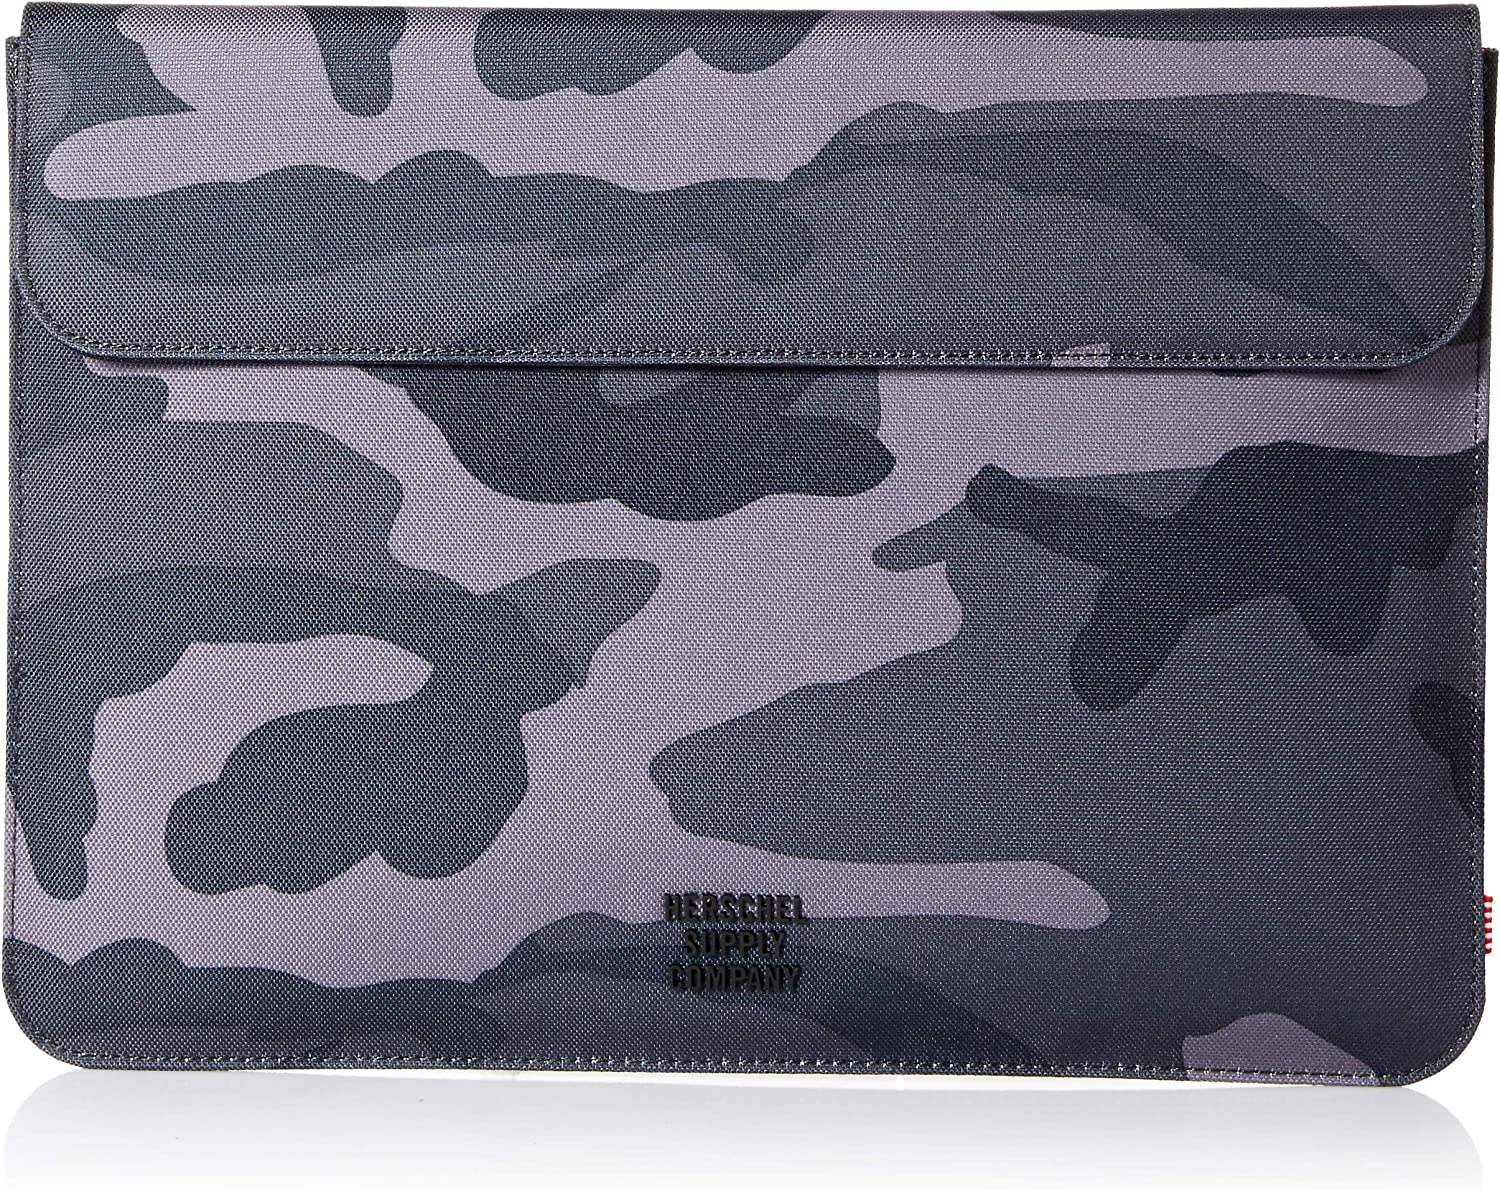 Herschel Men's Spokane Sleeve for MacBook/Ipad